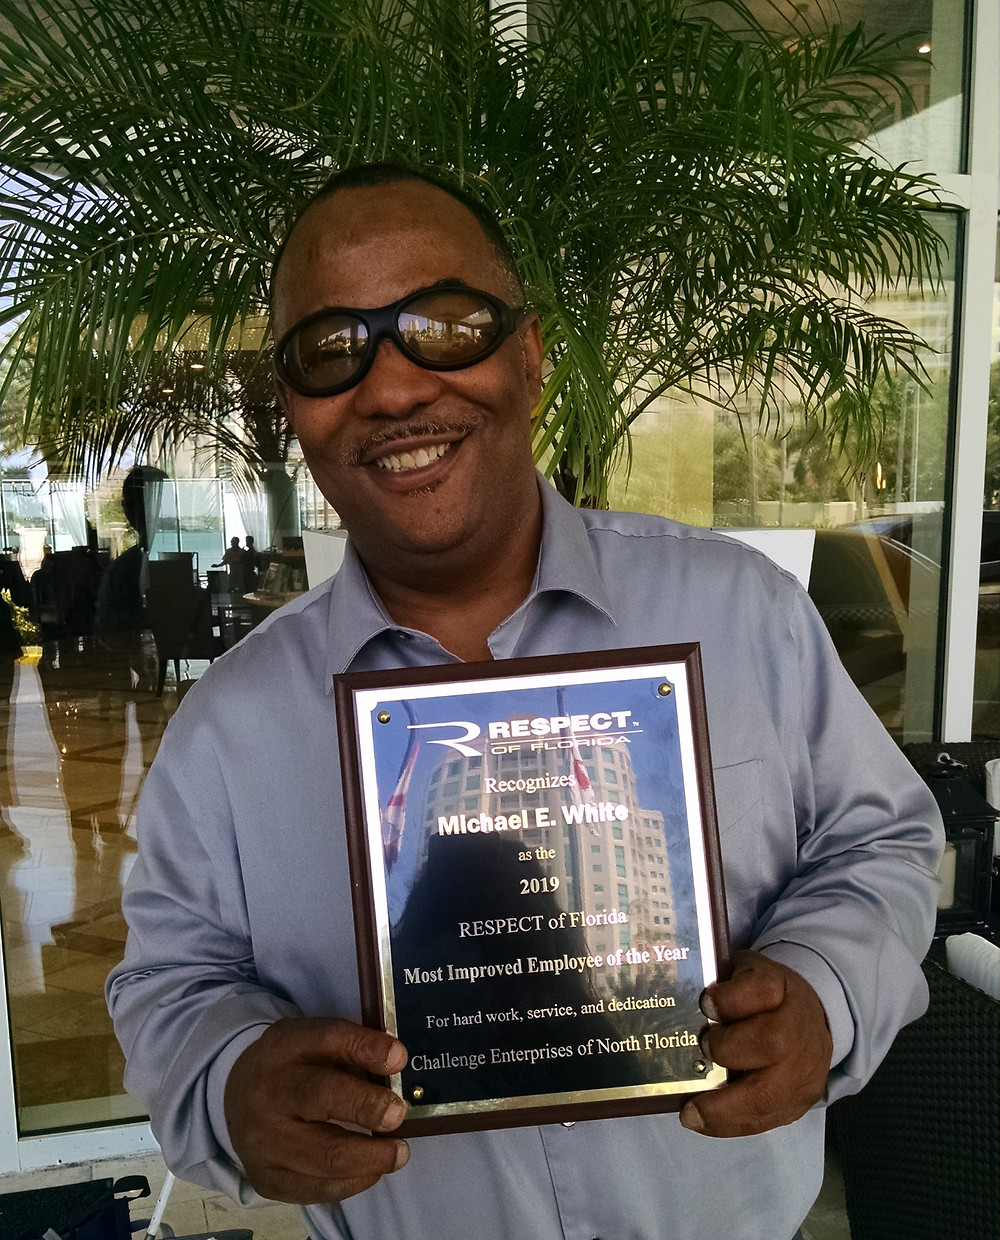 Picture of Michael White with award